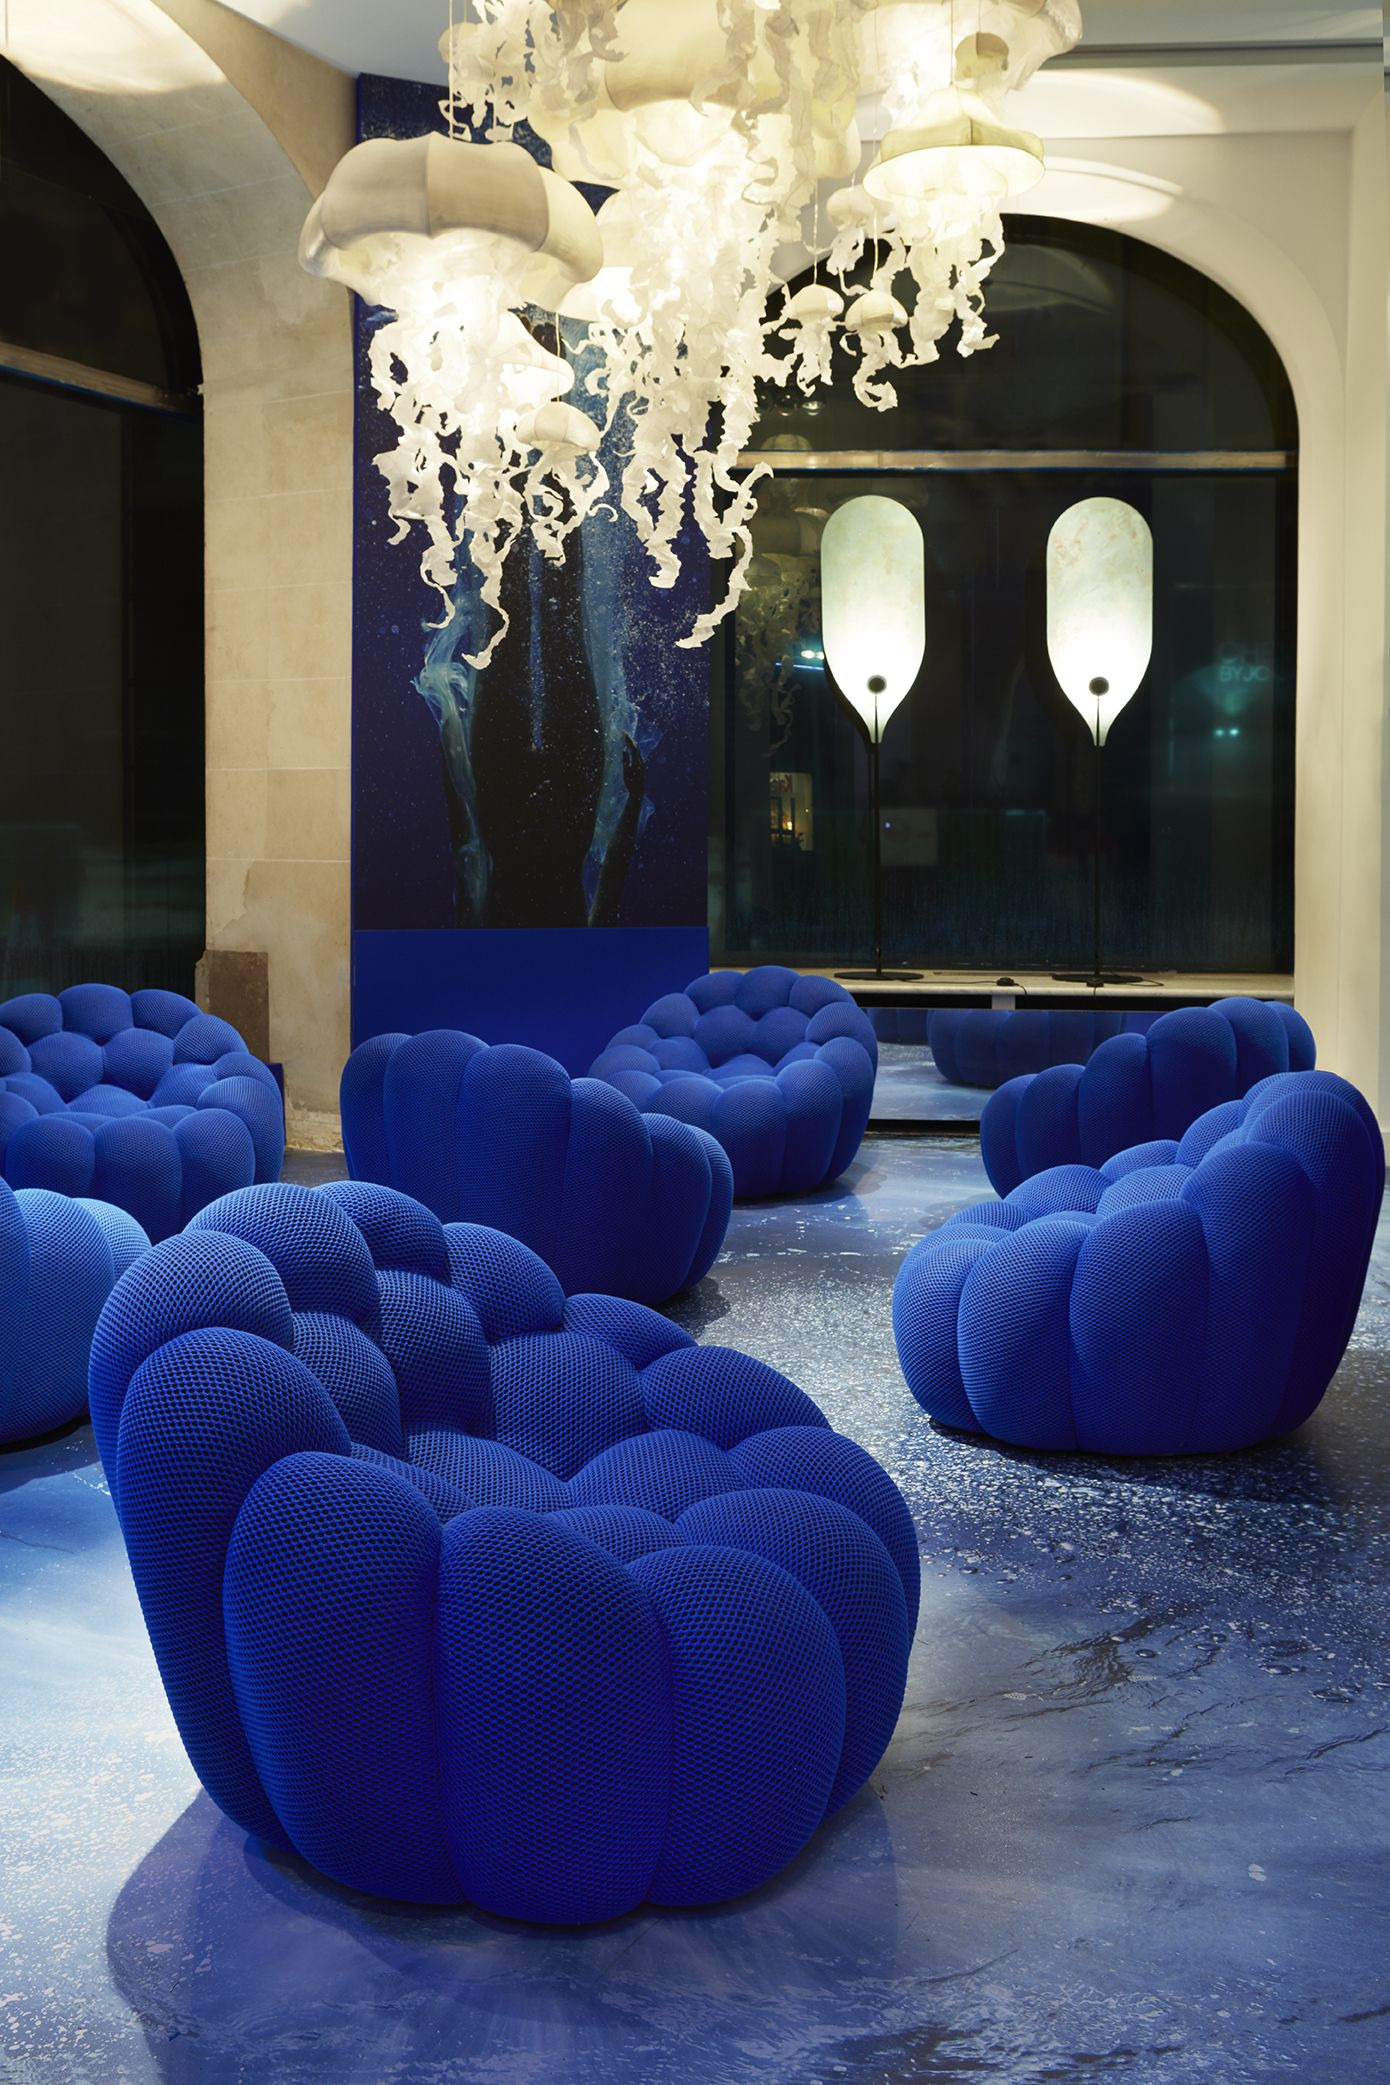 Bubble sofa designed by sacha lakic the comfort and fantasy of this armchair